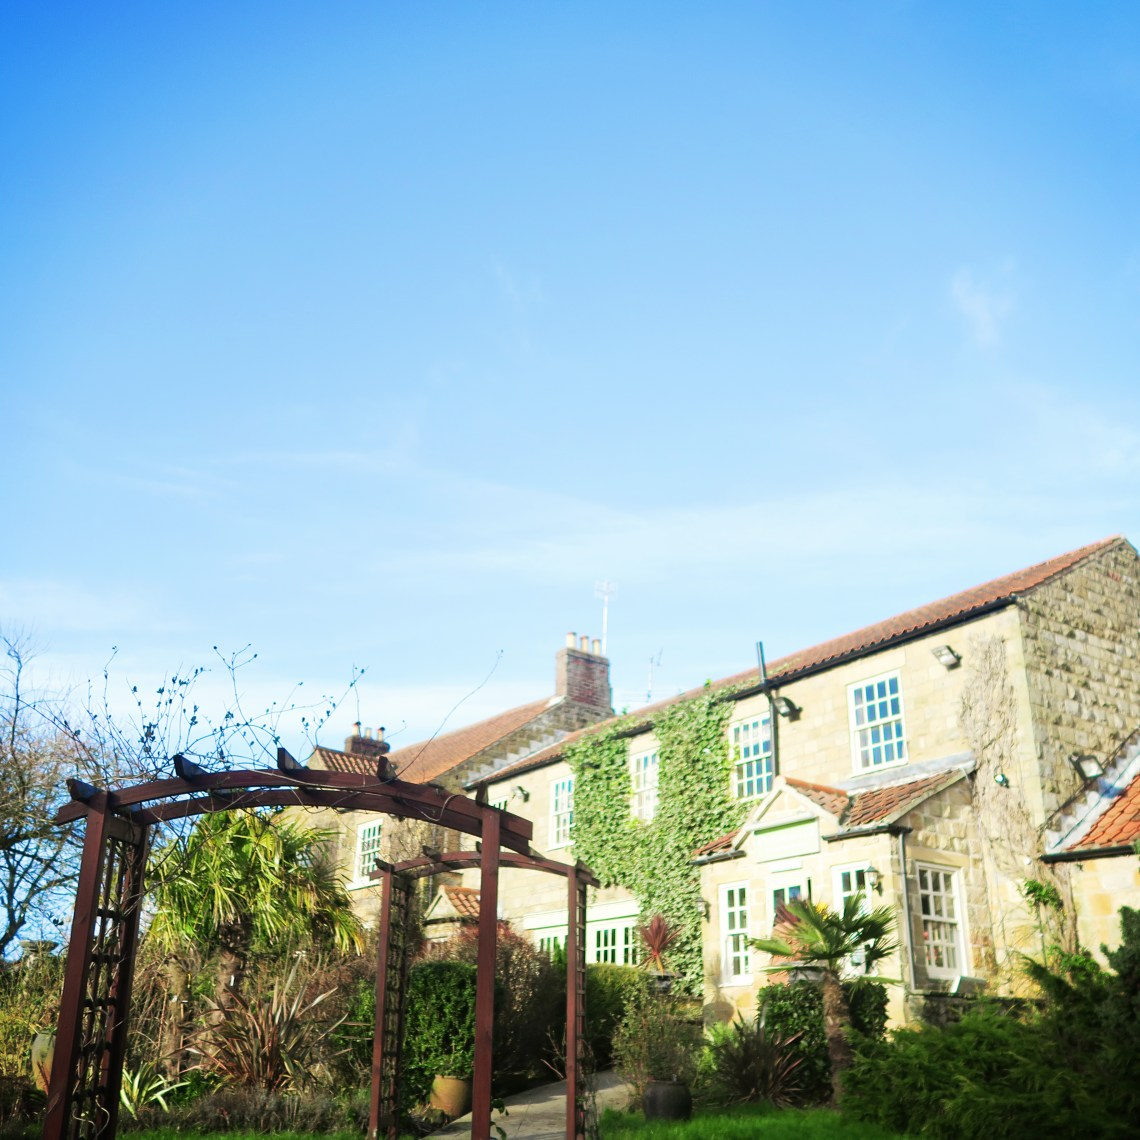 Sunny day at Ox Pasture Hall in Scarborough Yorkshire